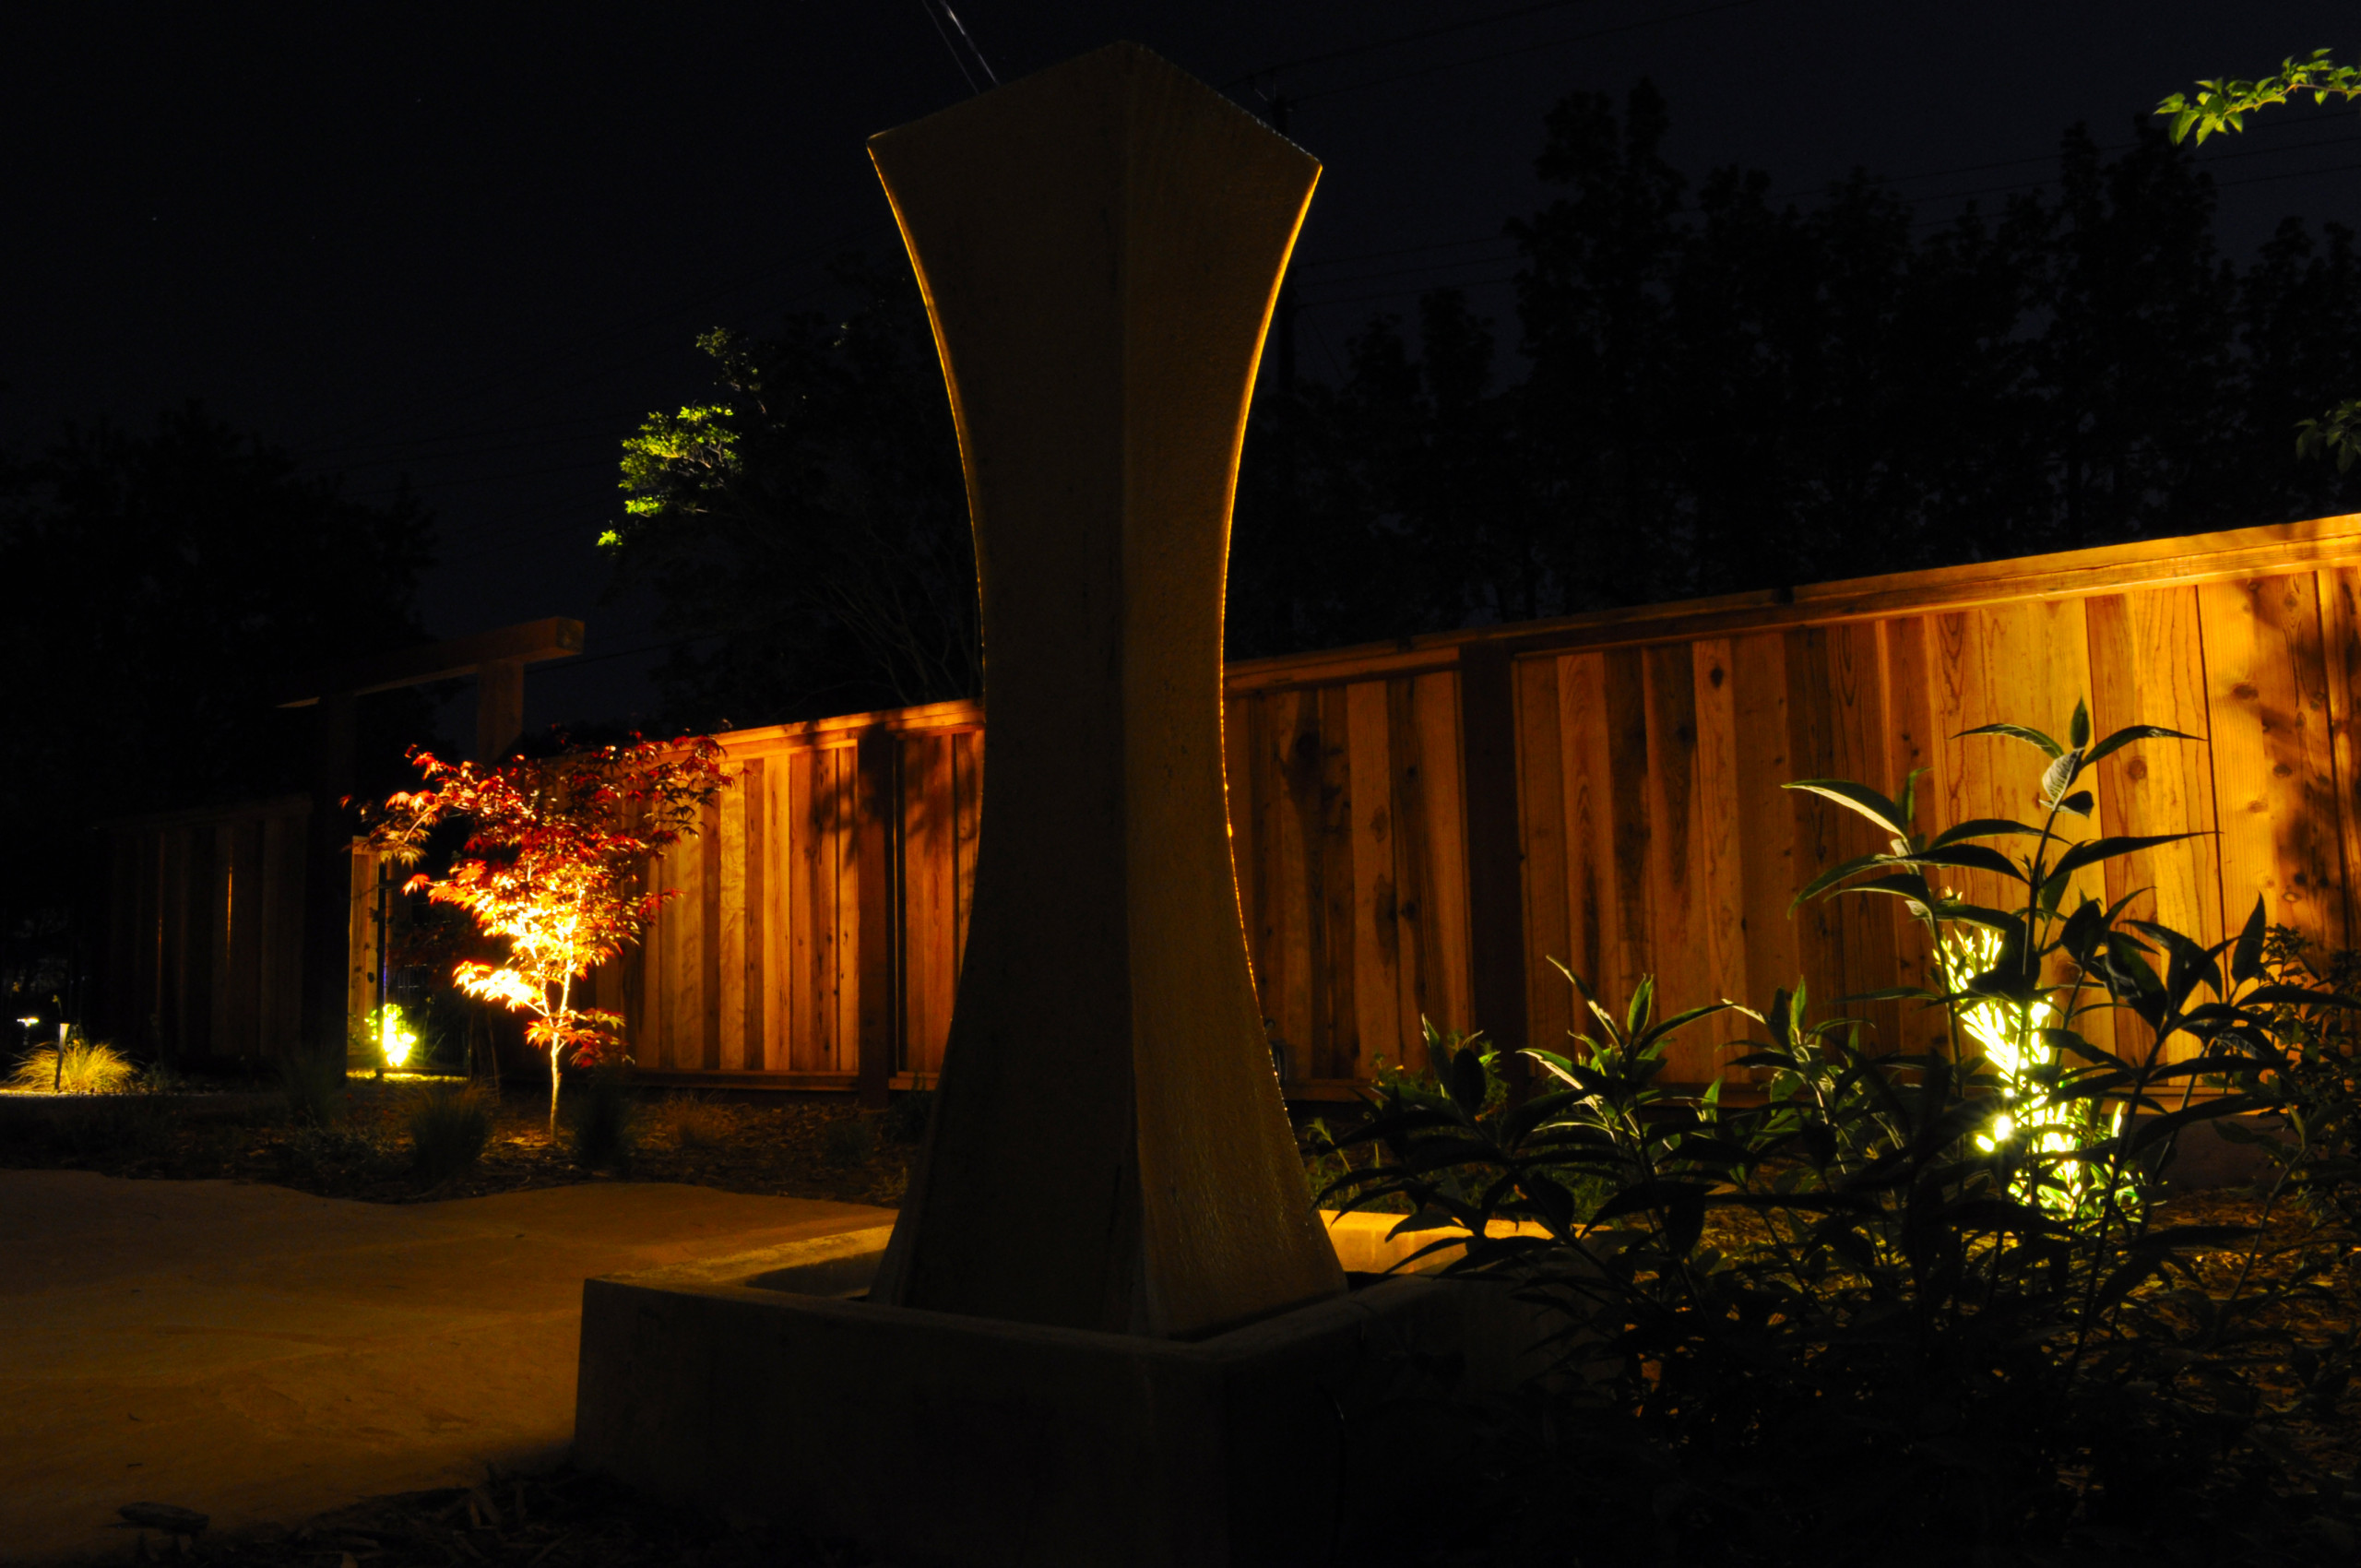 Front Garden Private Paradise- at Night